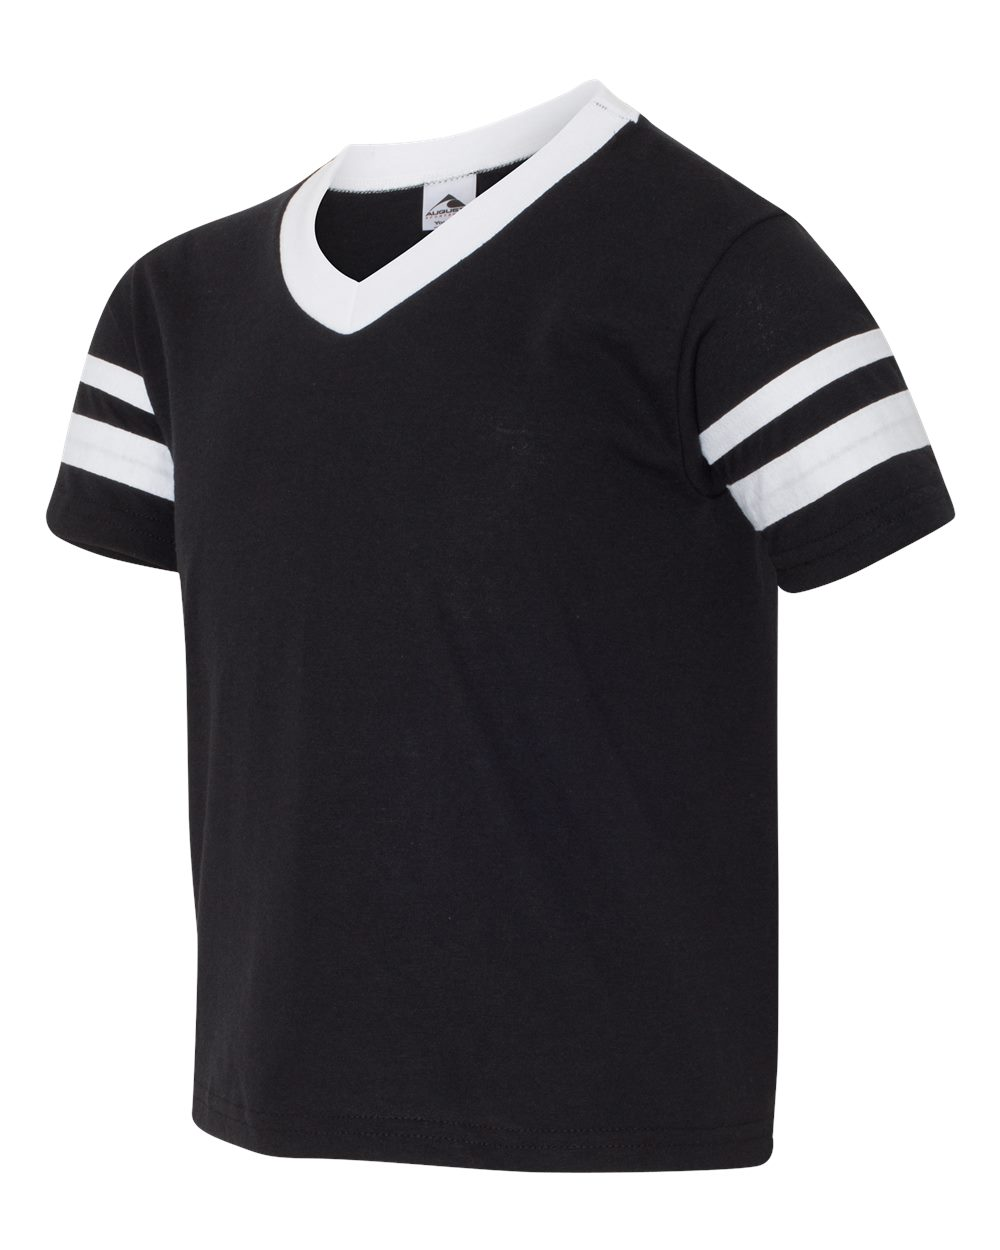 76636477c321e2 Augusta Sportswear 361 - Youth V-Neck Jersey with Striped Sleeves ...